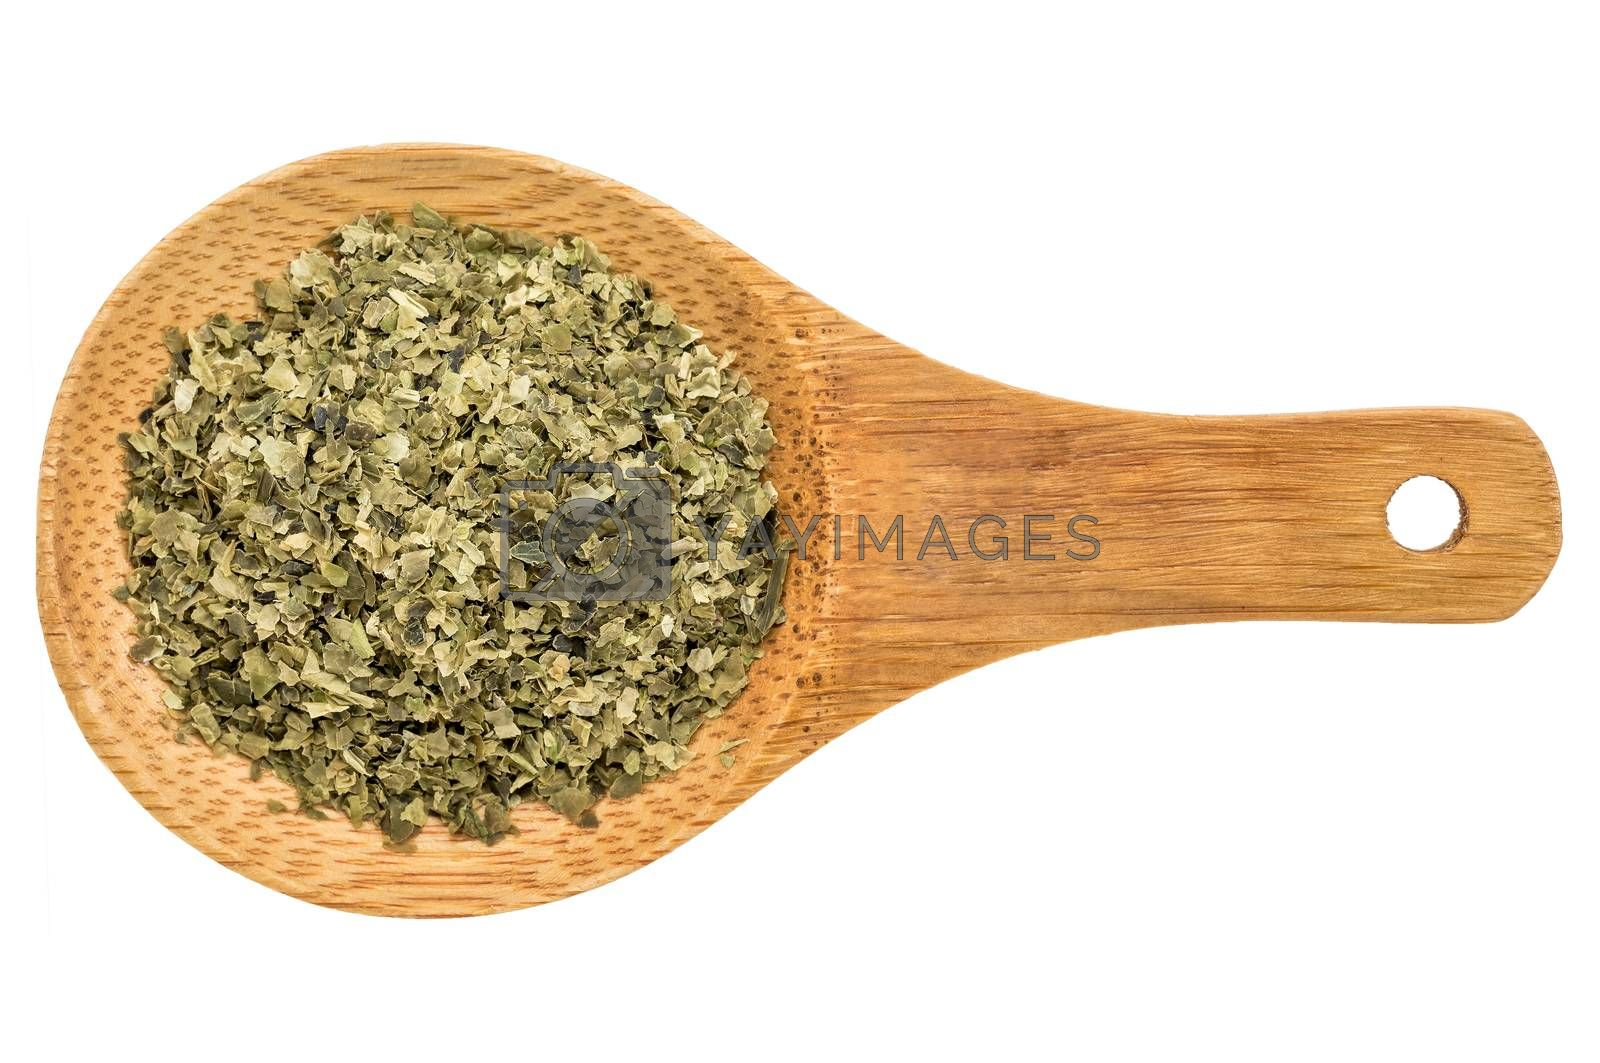 sea lettuce seaweed flakes - top view of a wooden spoon isolated on white